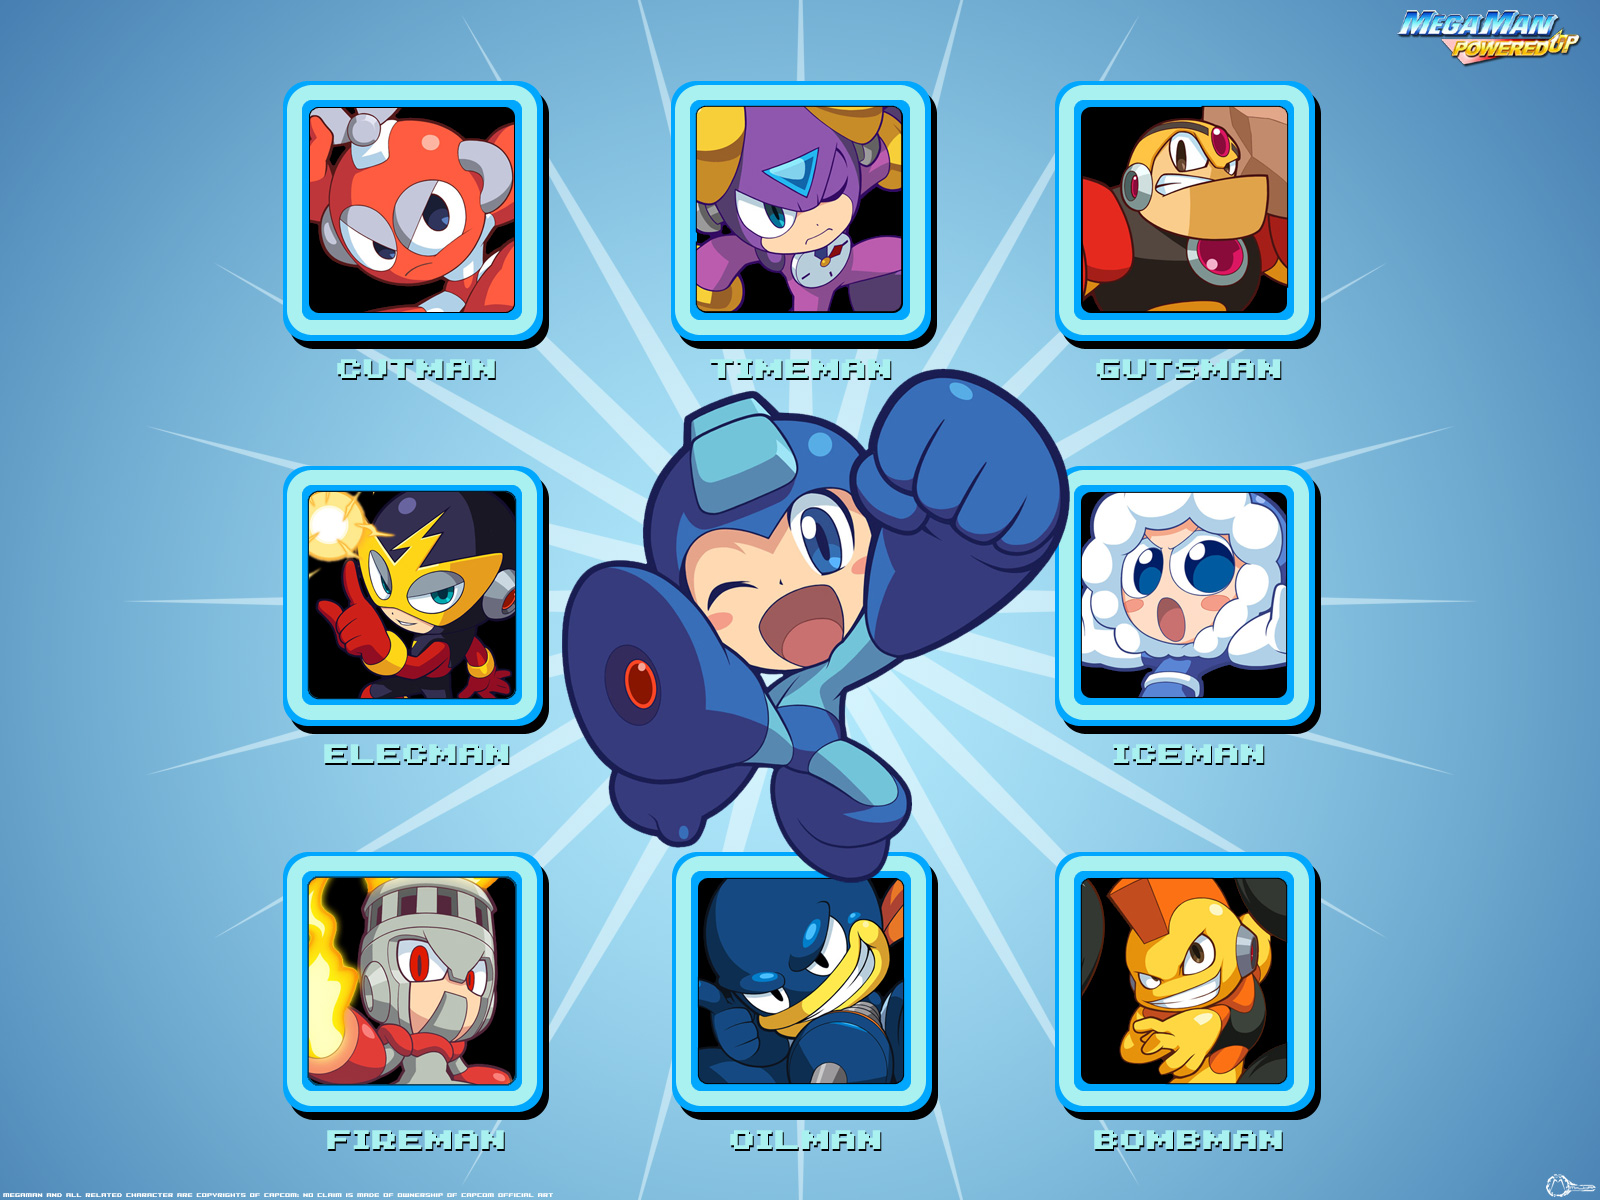 Mega Man Iphone Wallpaper Mega Man Powered Up Wallpaper And Background Image